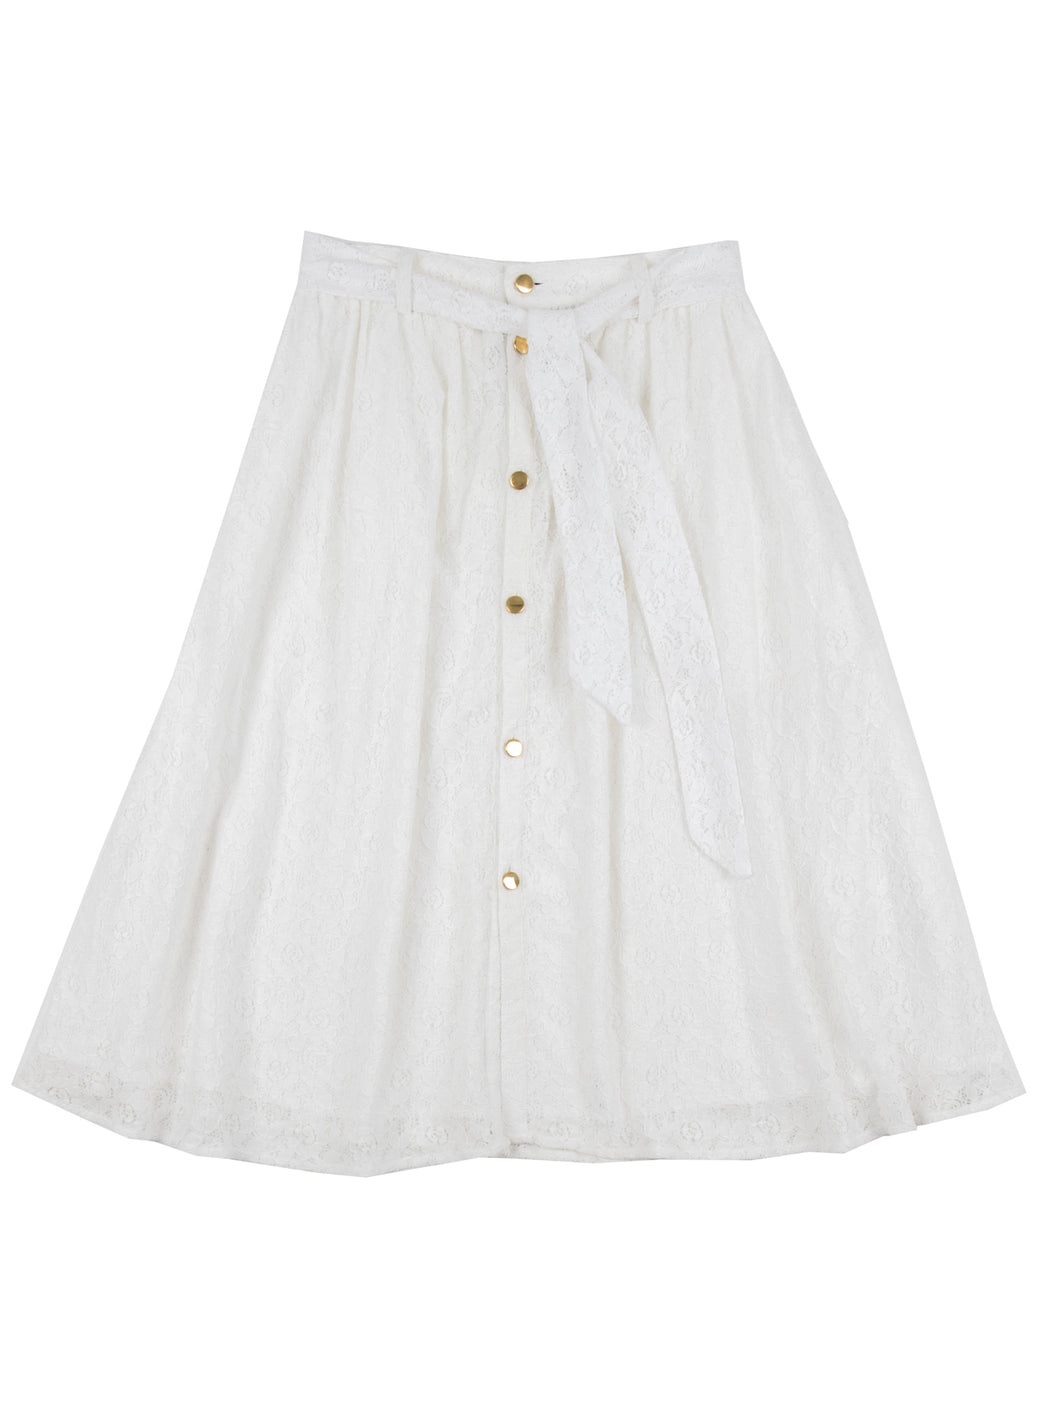 Johanna skirt, white lace